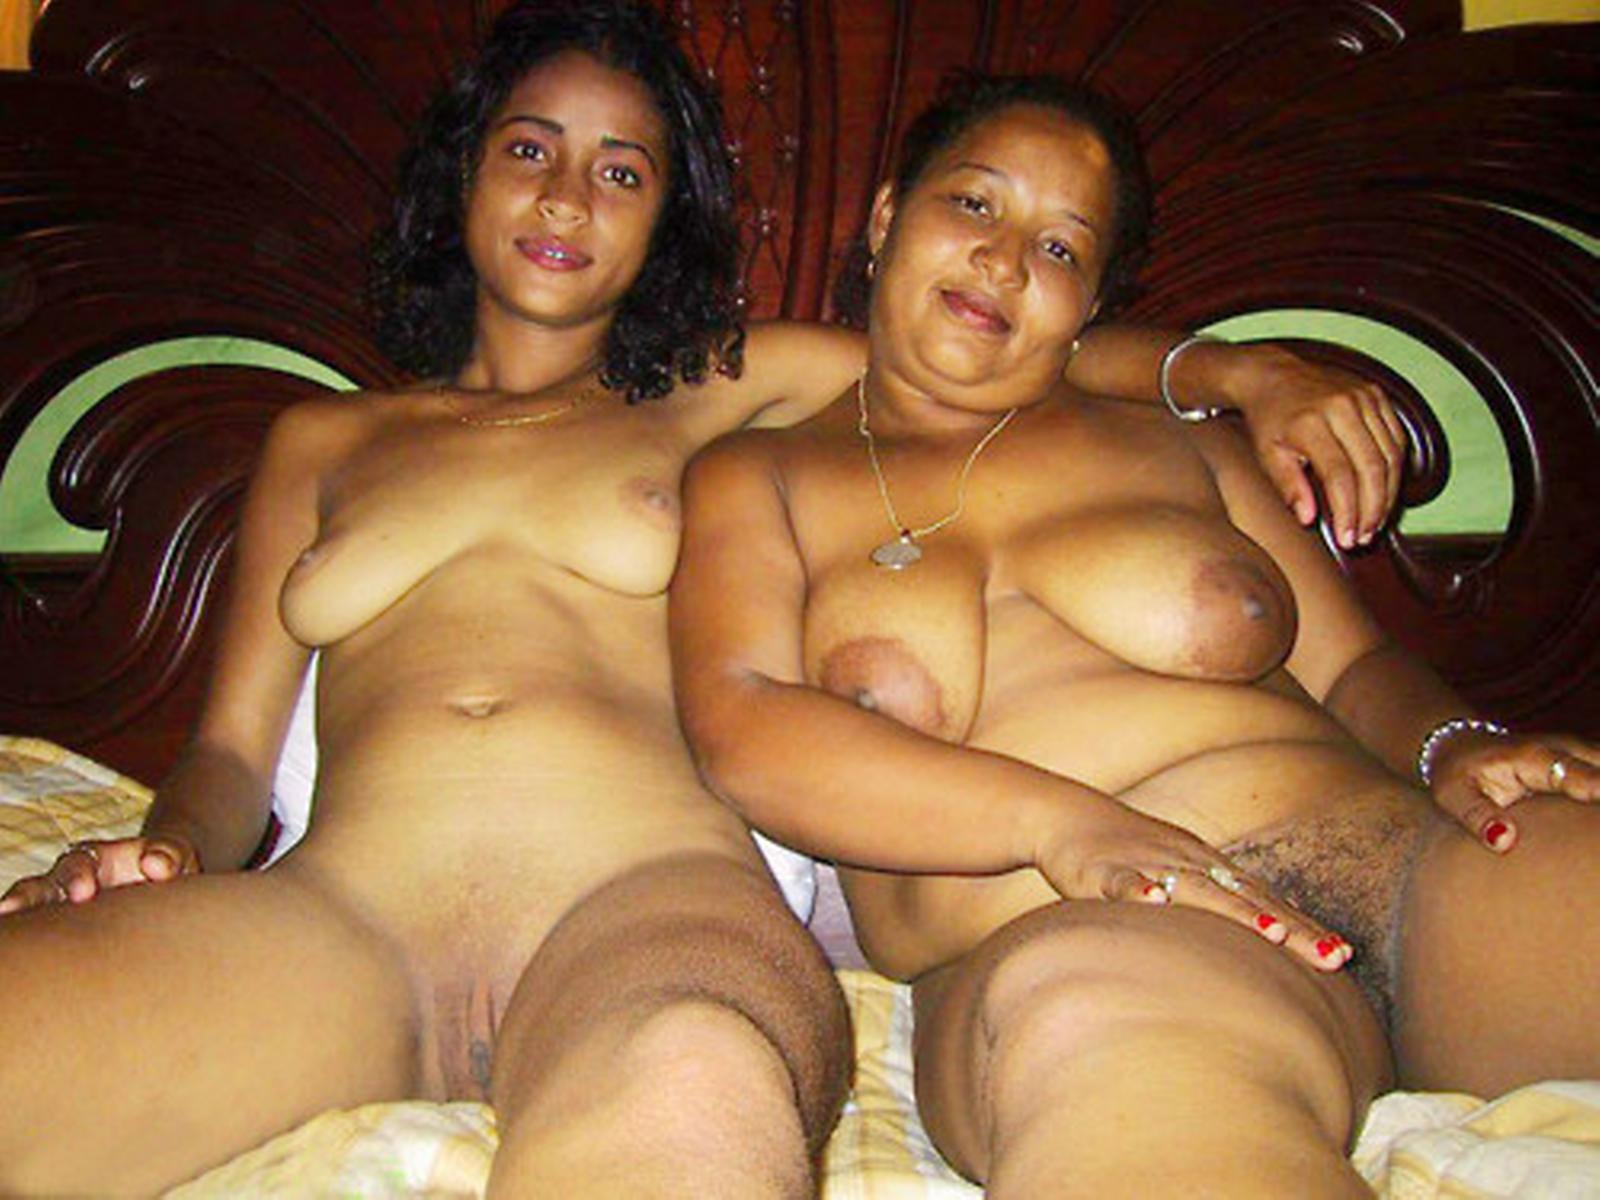 Mothers posing nude with their daughters - MOTHERLESS.COM